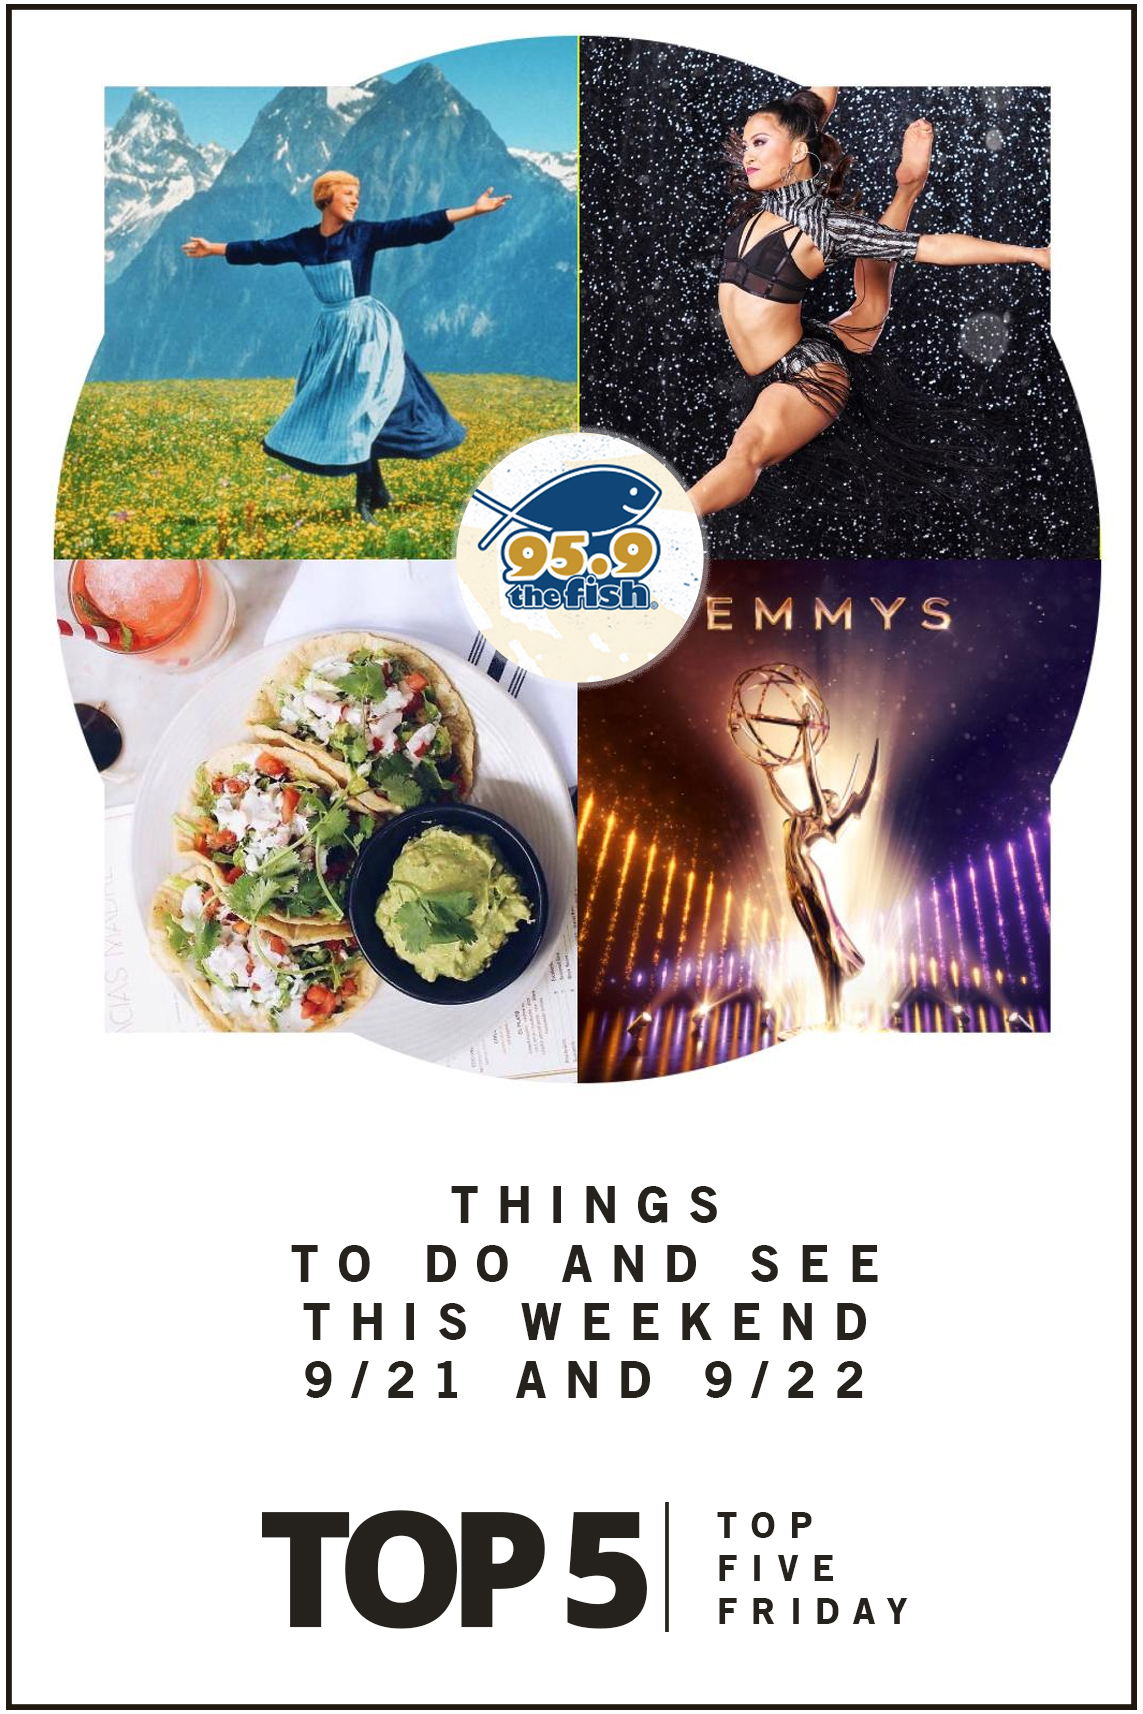 Top Five Friday: Things to Do and See This Weekend September 21st and 22nd 2019